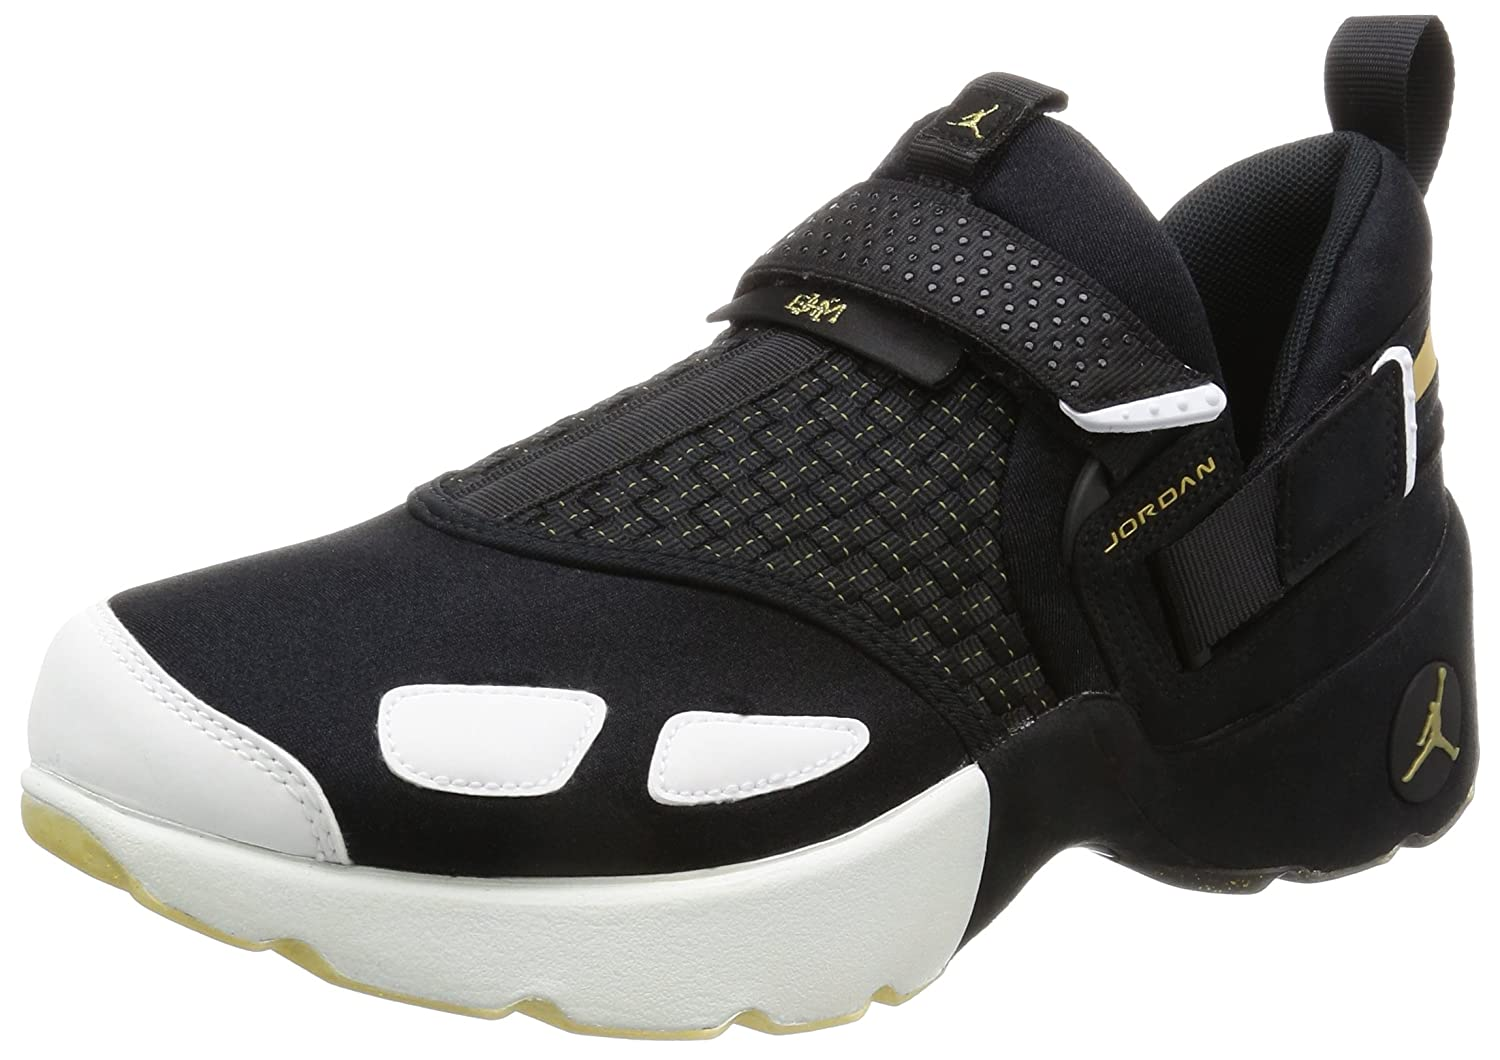 6616e7f96 Amazon.com | Air Jordan Trunner LX Black History Month Men's Shoes Black/Metallic  Gold-White 909408-032 (10.5 D(M) US) | Basketball